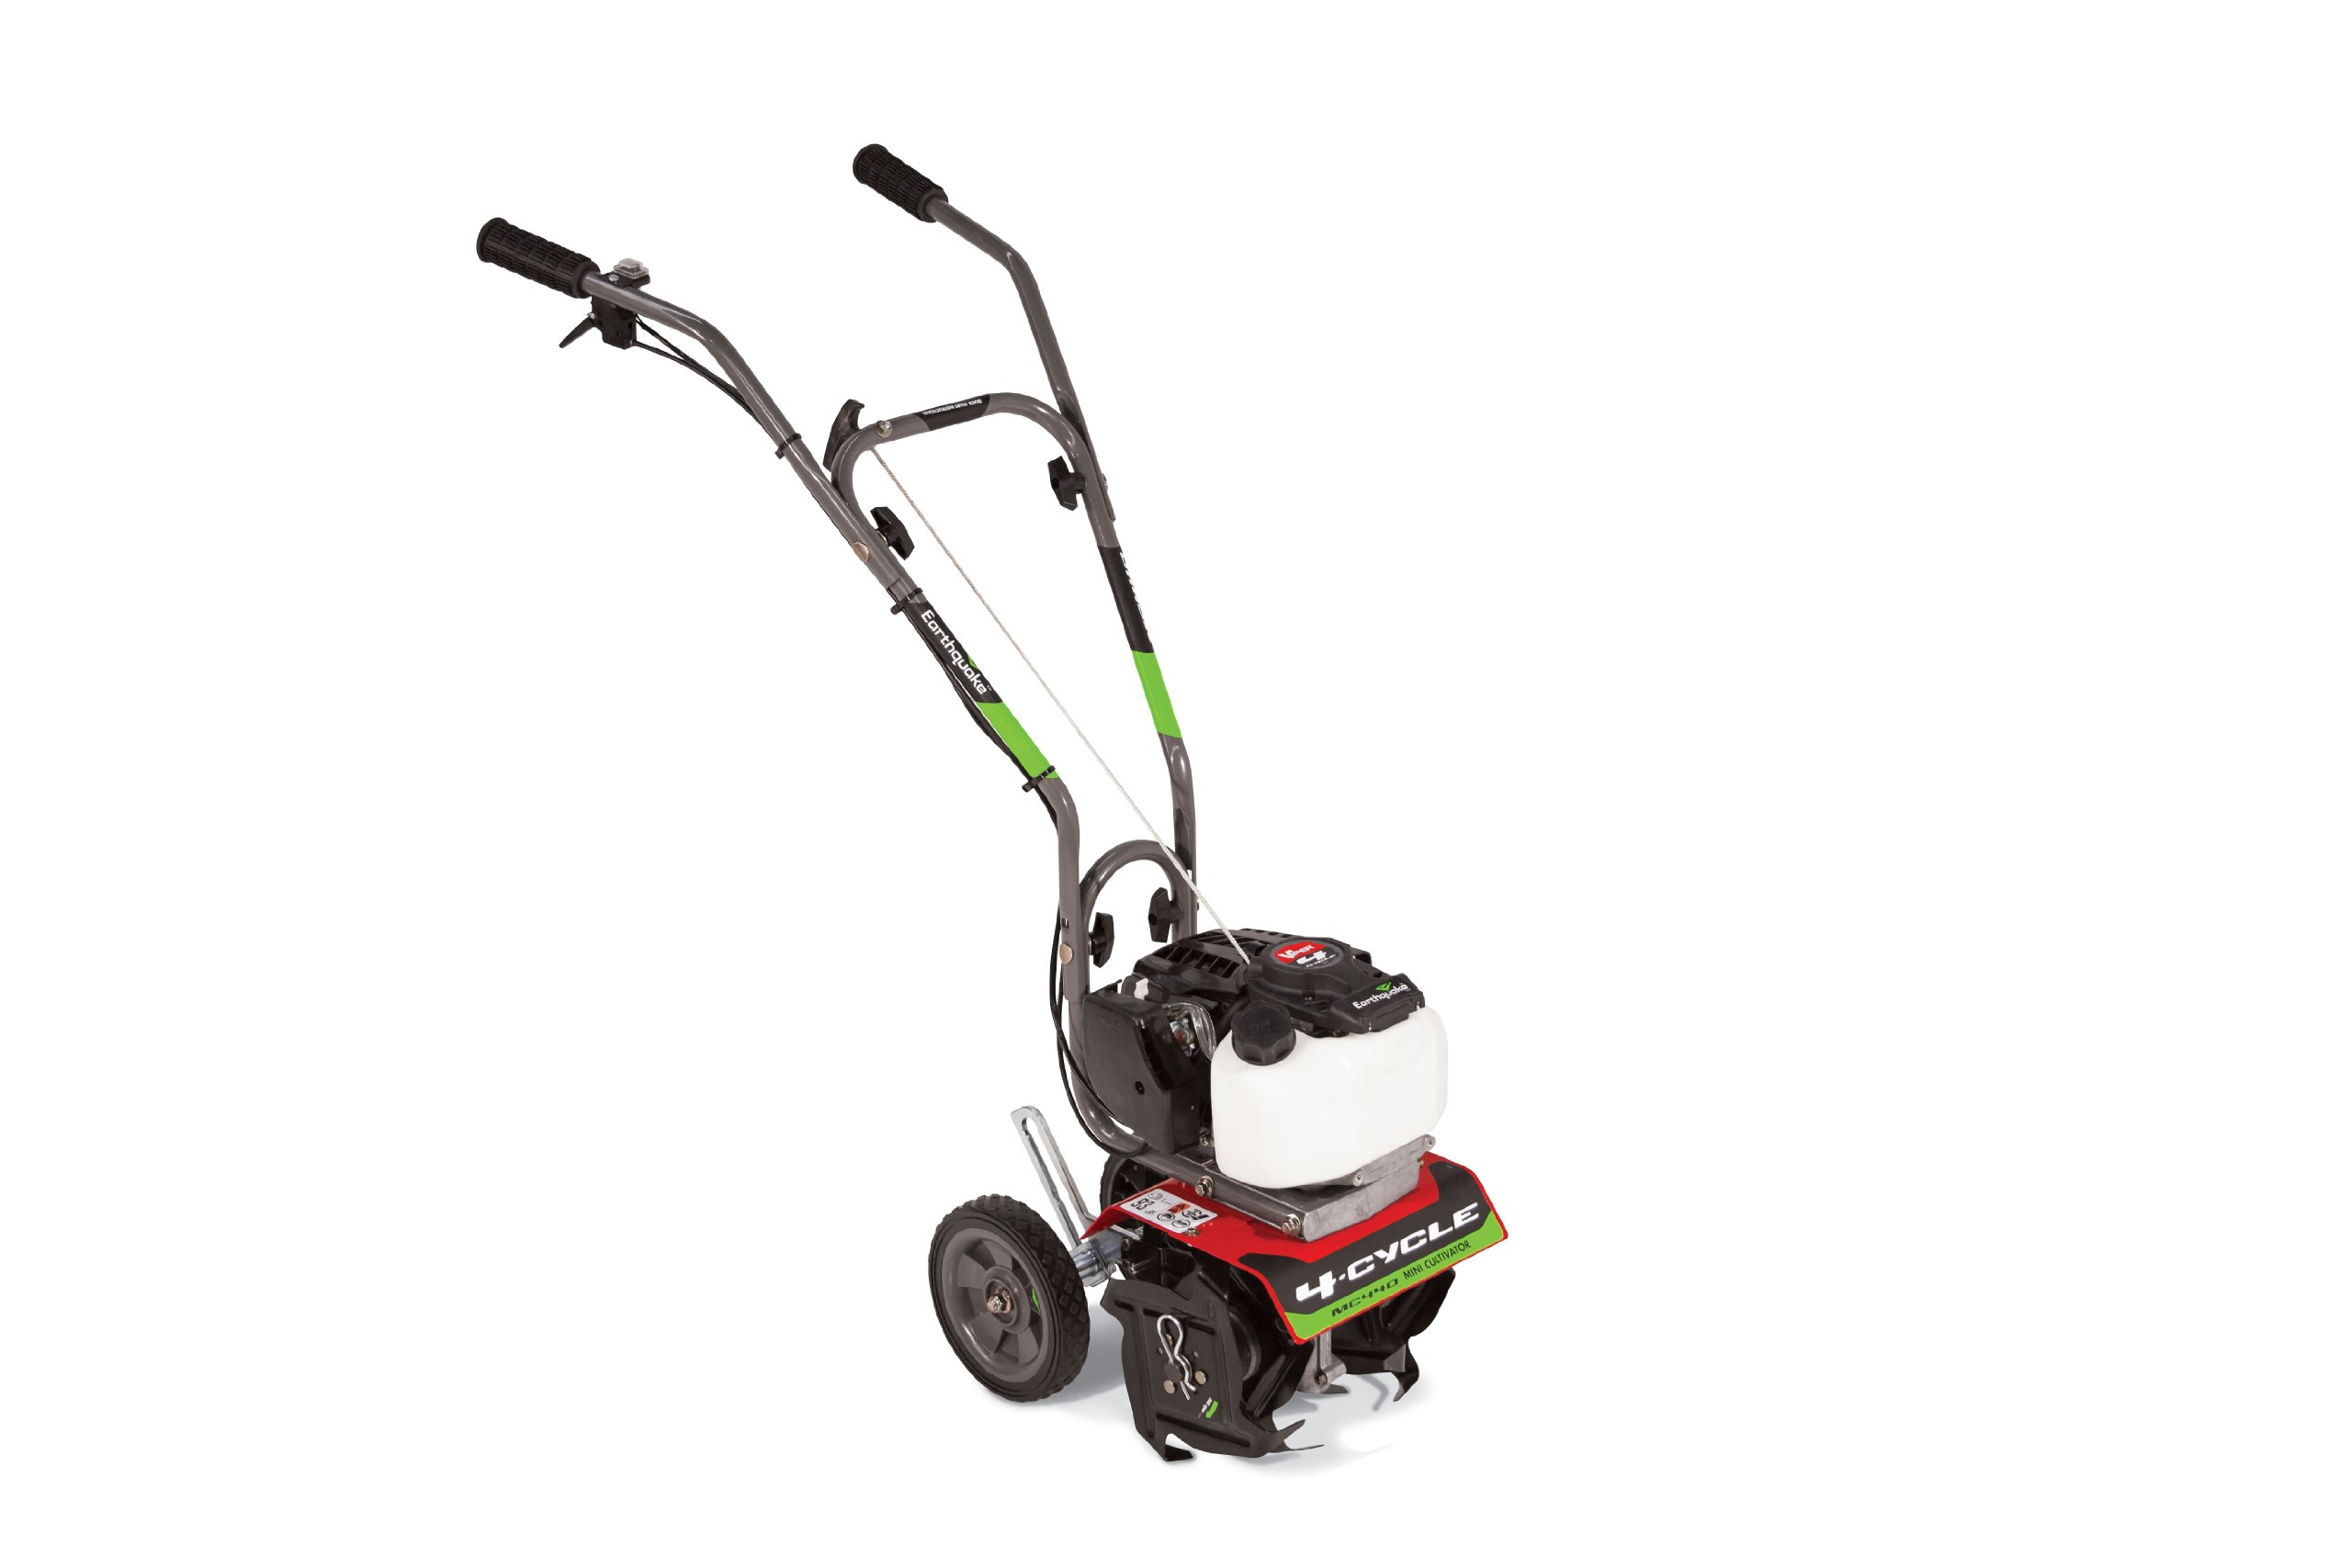 Earthquake 12802 MC440 Mini Cultivator with 40cc 4-Cycle Viper Engine, 5 Year Warranty